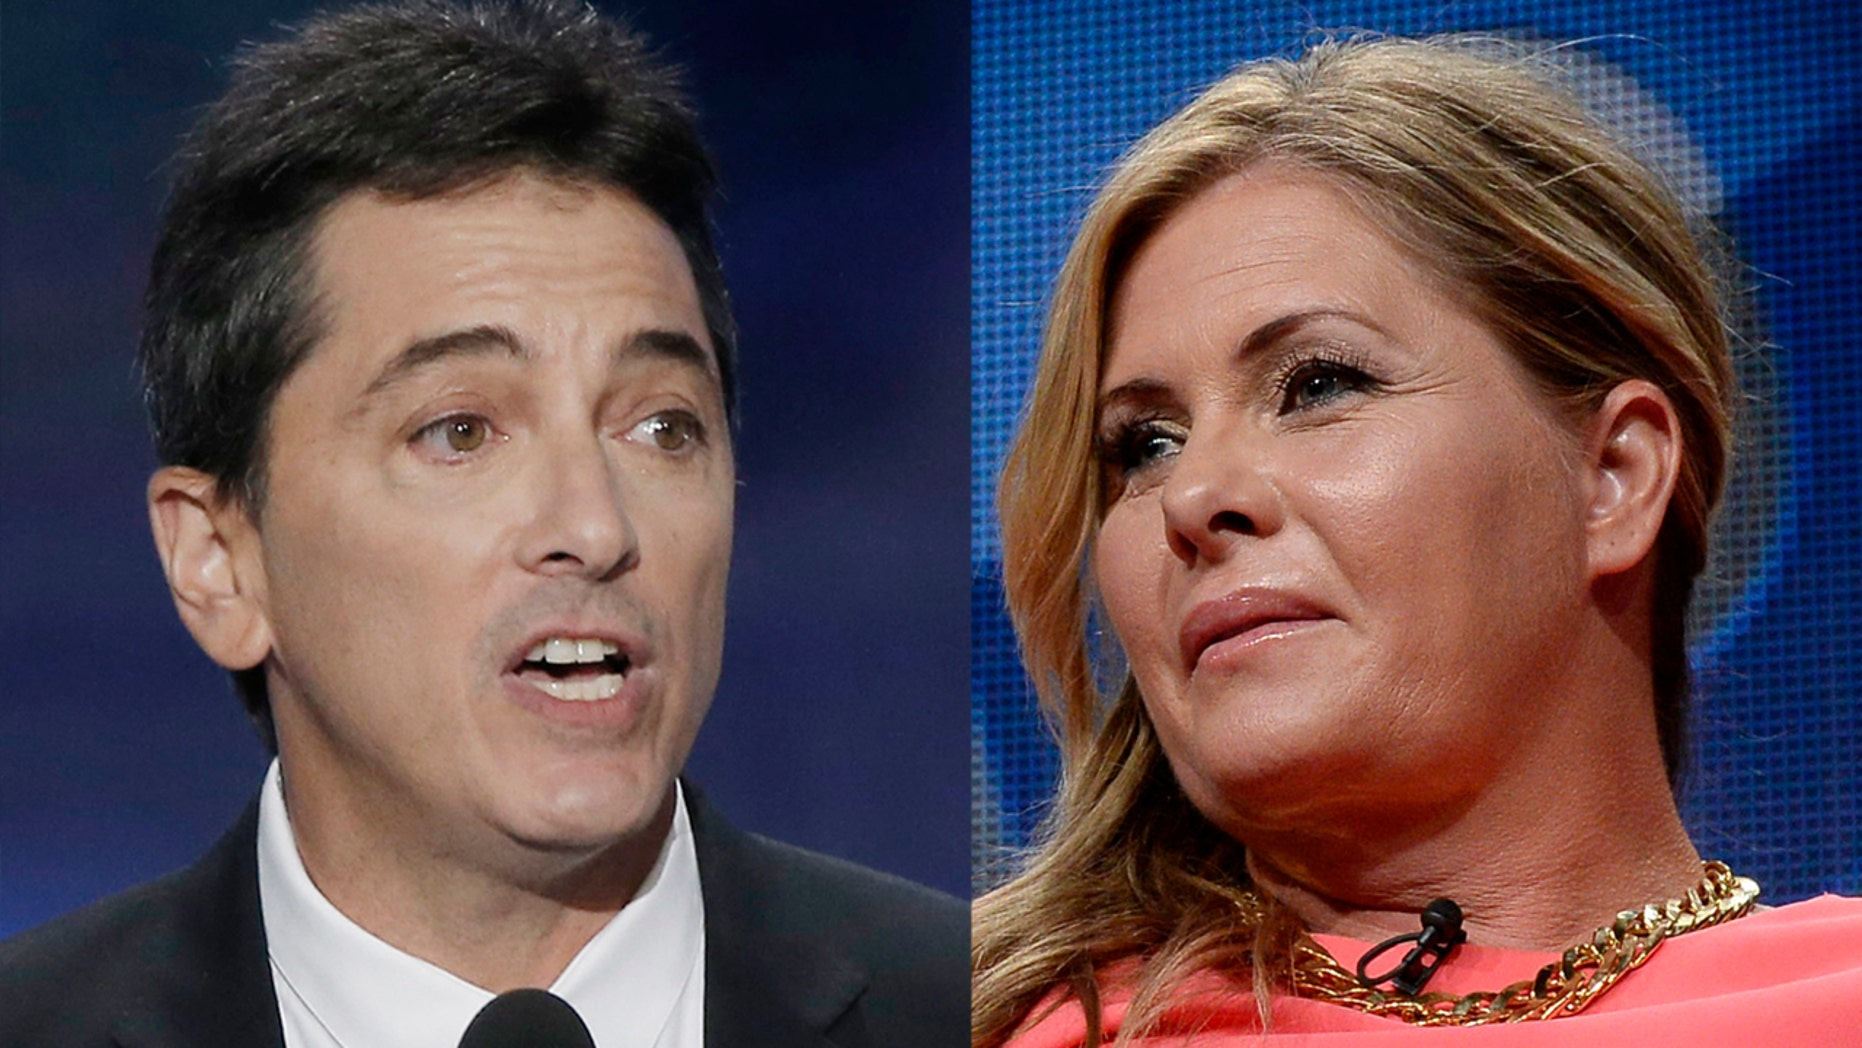 Actor Scott Baio stronly denied in a Facebook Live video accusations that he sexually assaulted his former co-star Nicole Eggert.